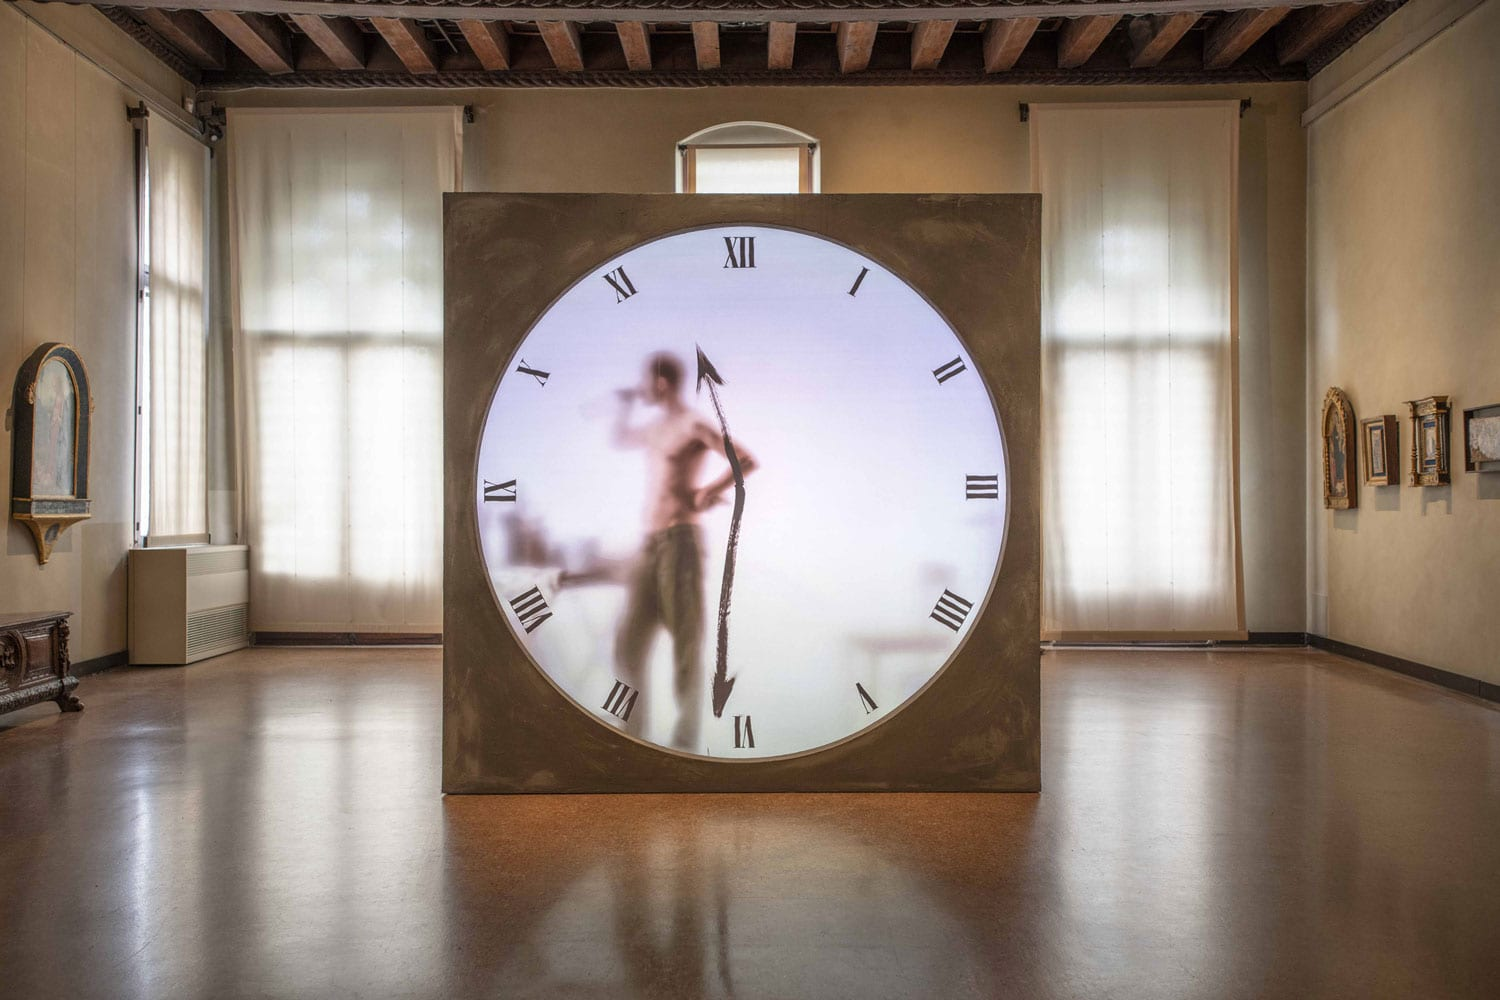 Real Time Xl Clock by Maarten Baas at Venice Art Biennale 2019 | Yellowtrace